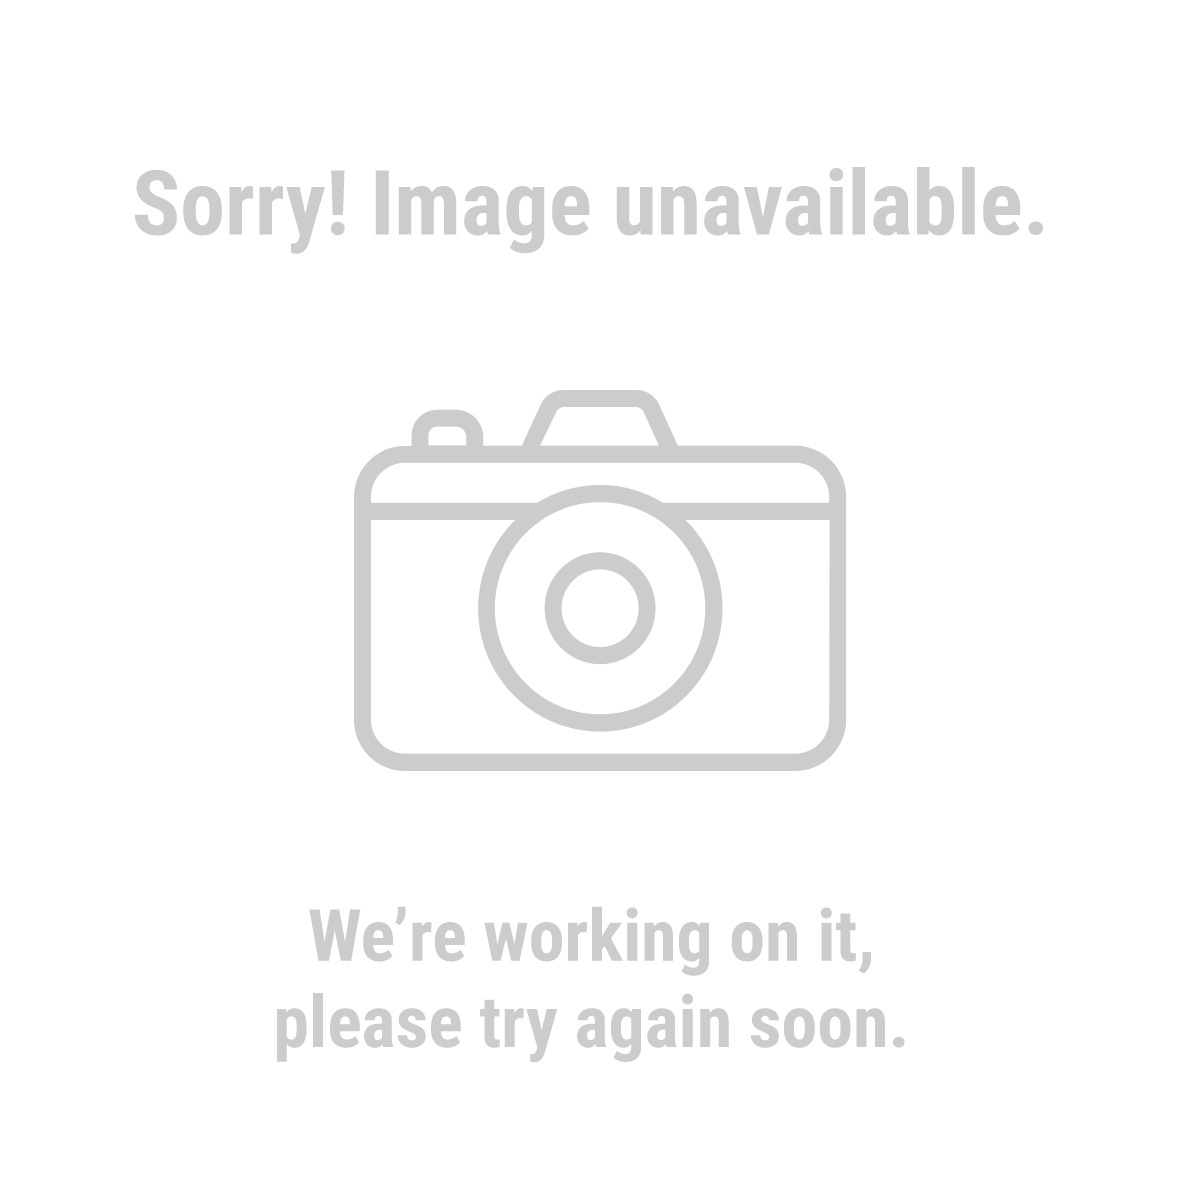 HFT® 69116 7 ft. 11 in. x 9 ft. 11 in. Blue/Silver Reversible All Purpose/Weather Resistant Tarp